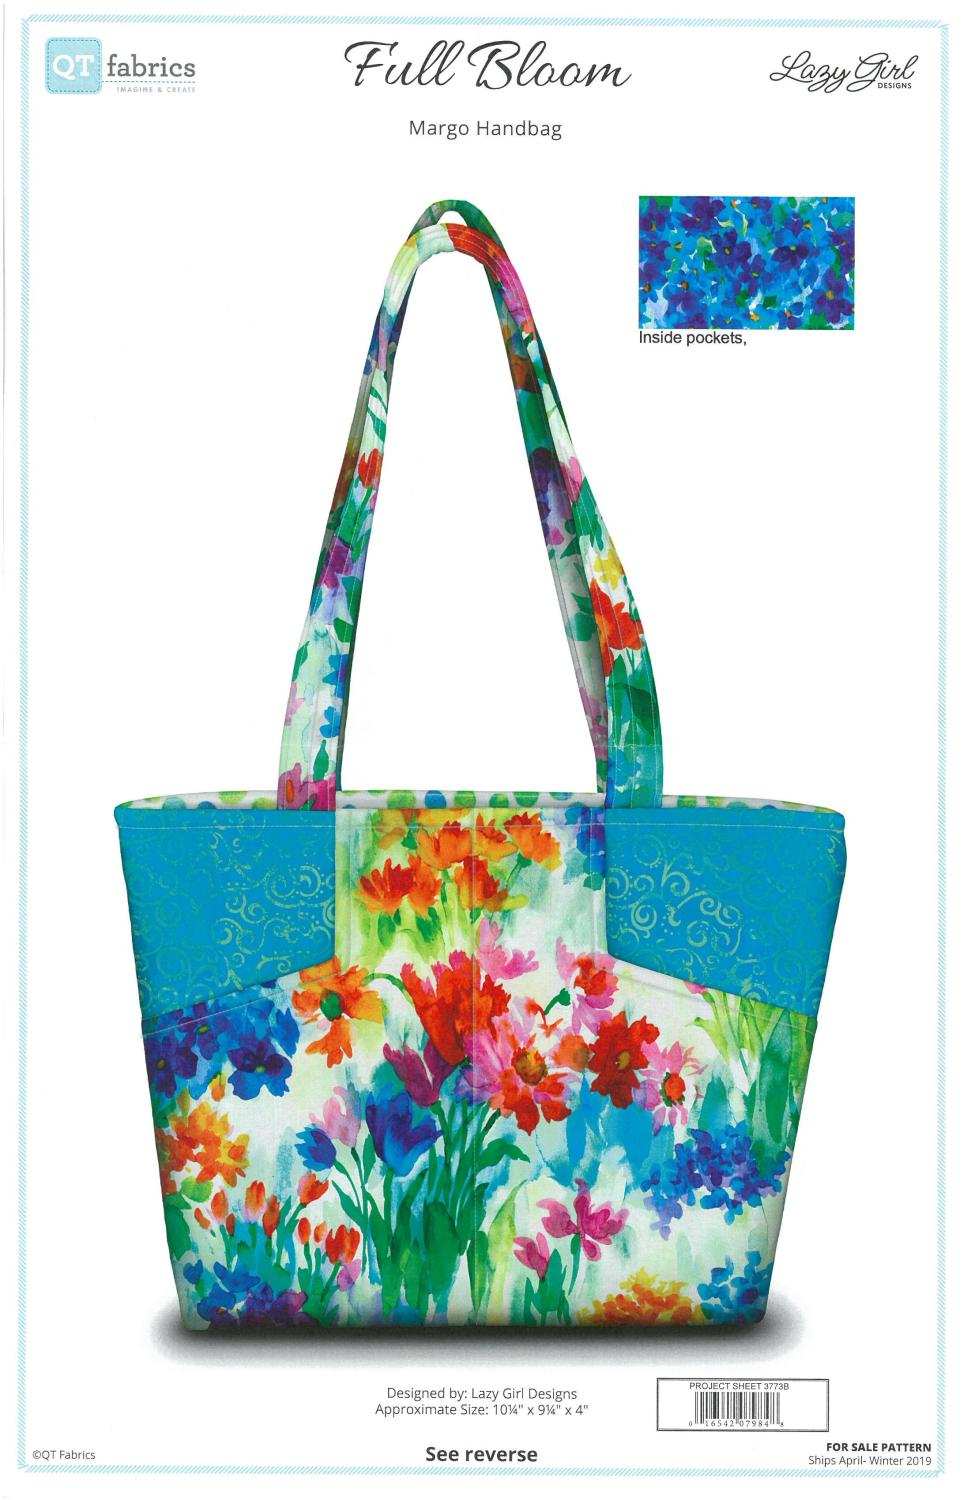 Full Bloom Handbag Fabric Kit